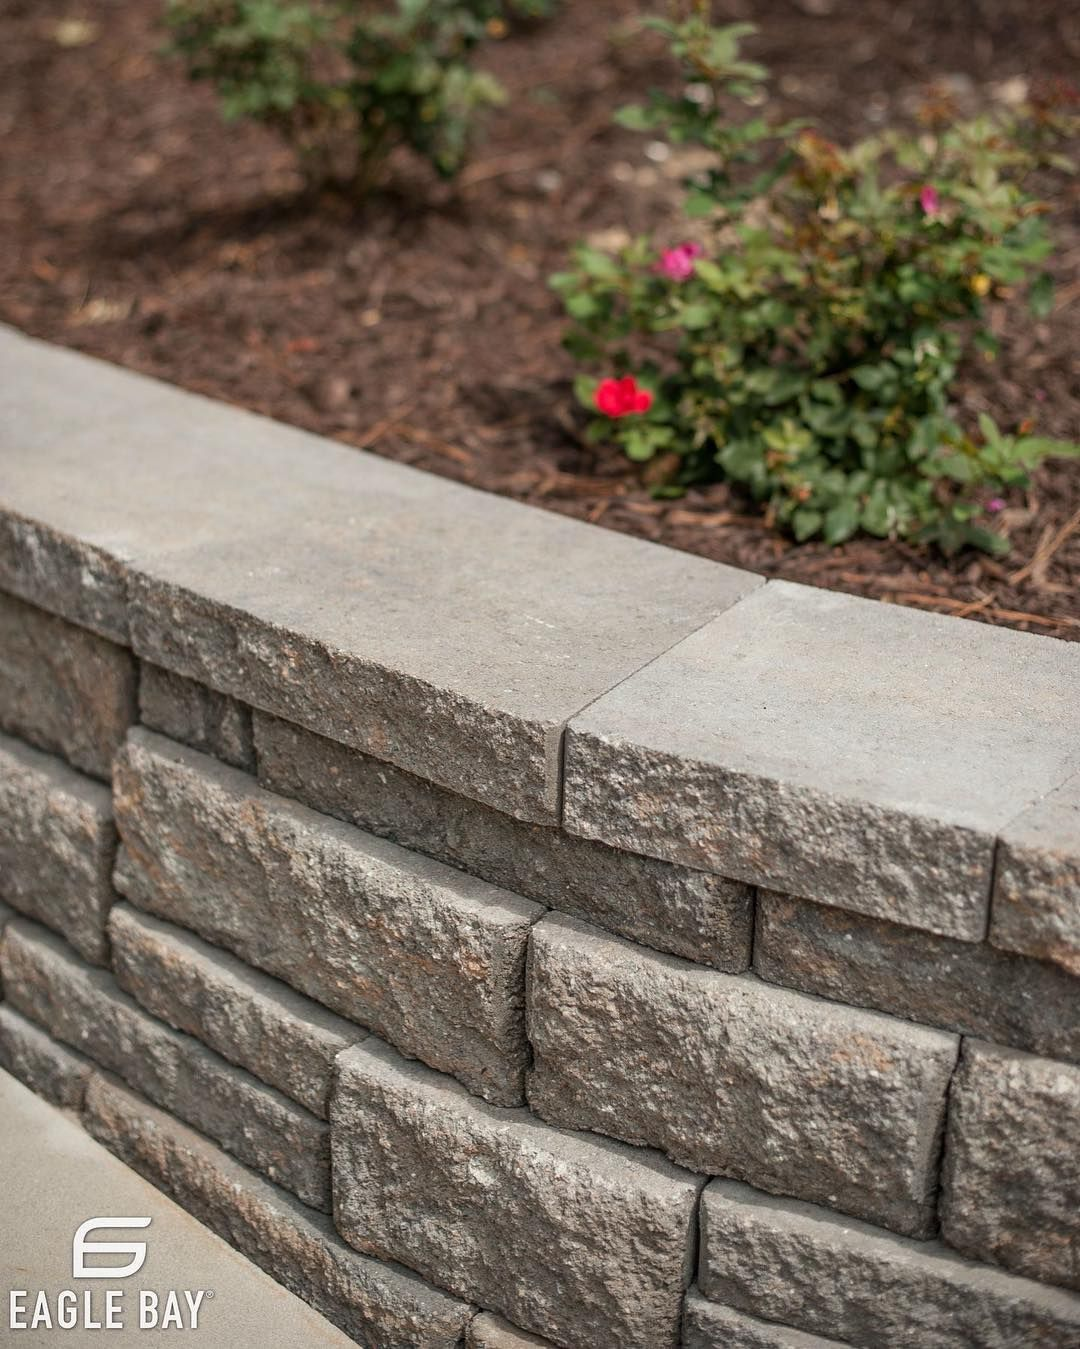 Retaining Wall Landscapers Near Me: Retaining Walls Turned Planters. Perfect. #eaglebay